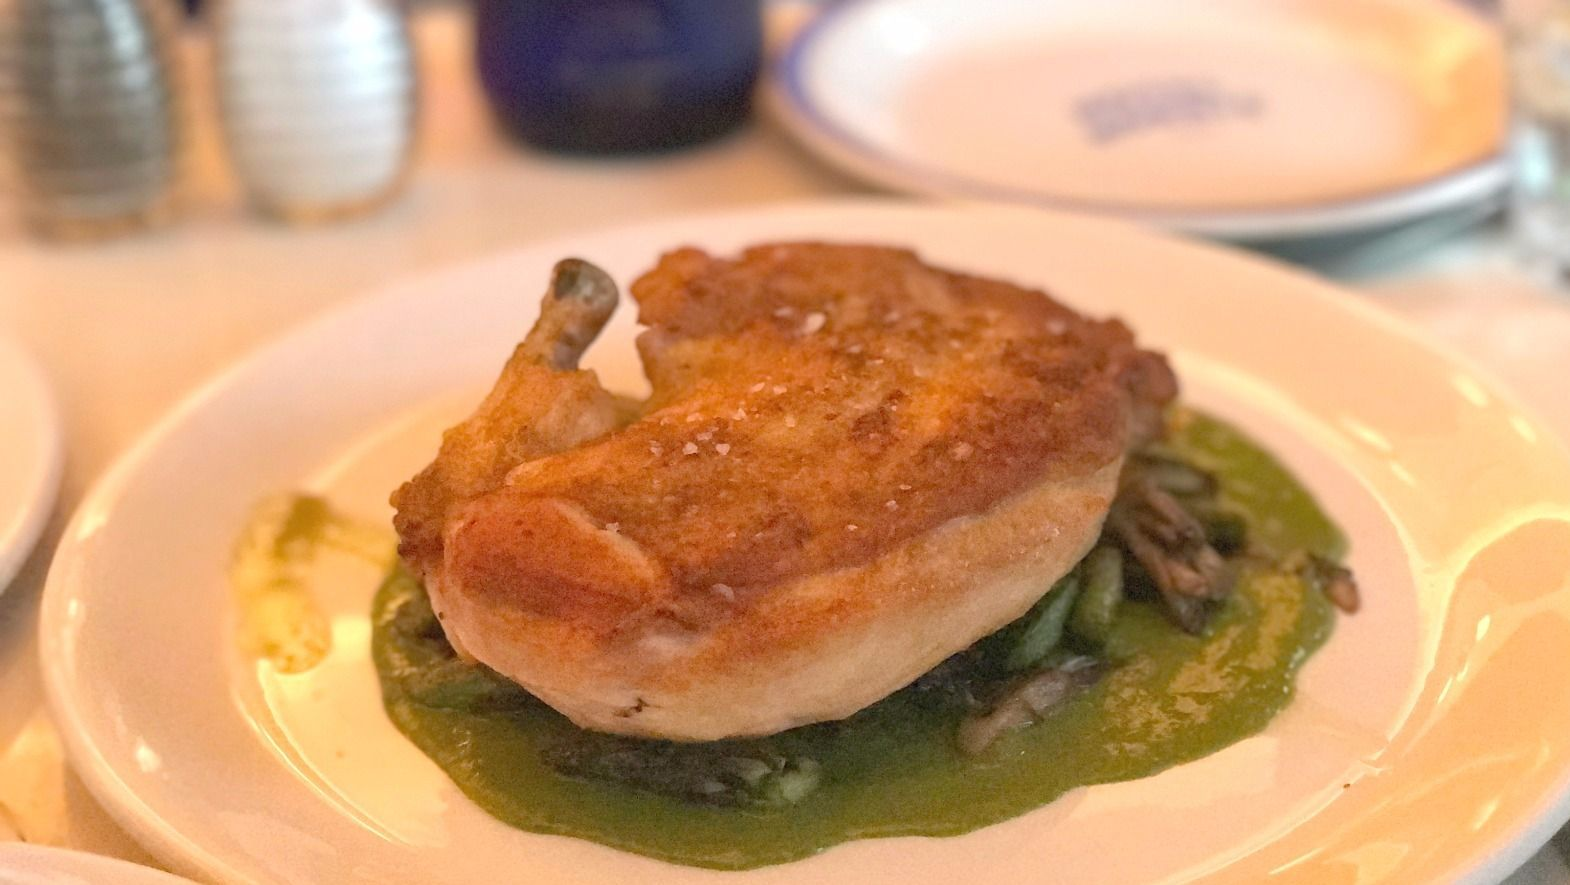 Spring Chicken: Moist, juicy oven-roasted chicken rests atop a garlic purée and spring vegetables.